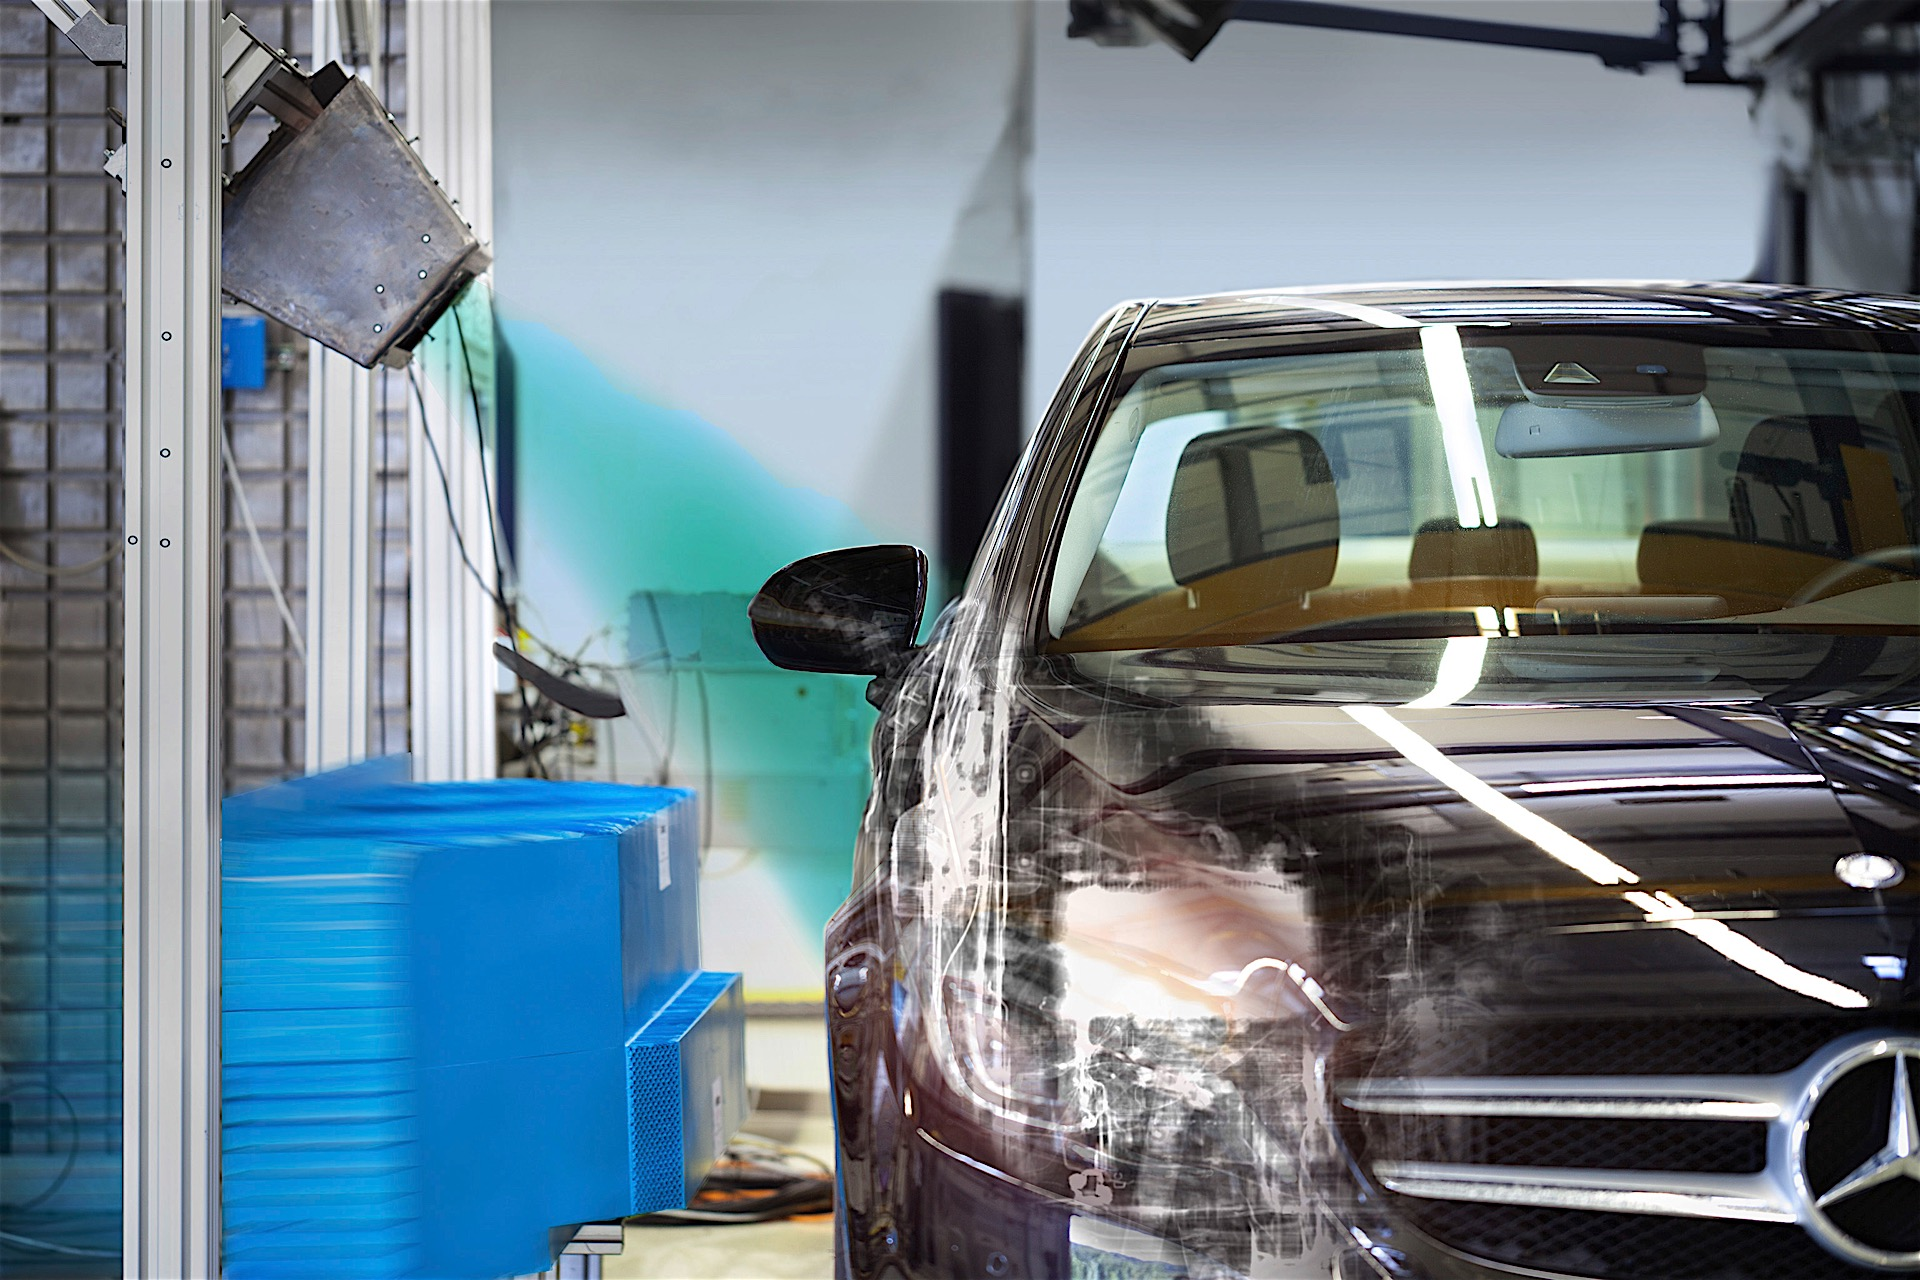 Daimler Using X-ray Technology in Crash Tests to Increase Safety